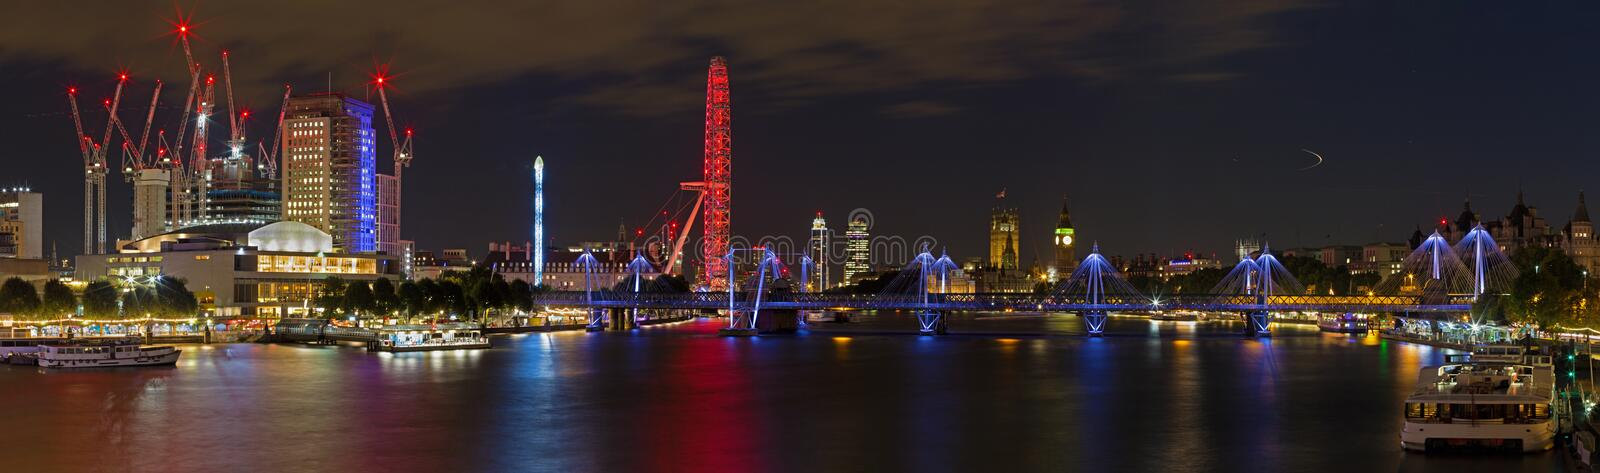 London - The nightly panorama of the City with the Big Ben and the London Eye. royalty free stock photography